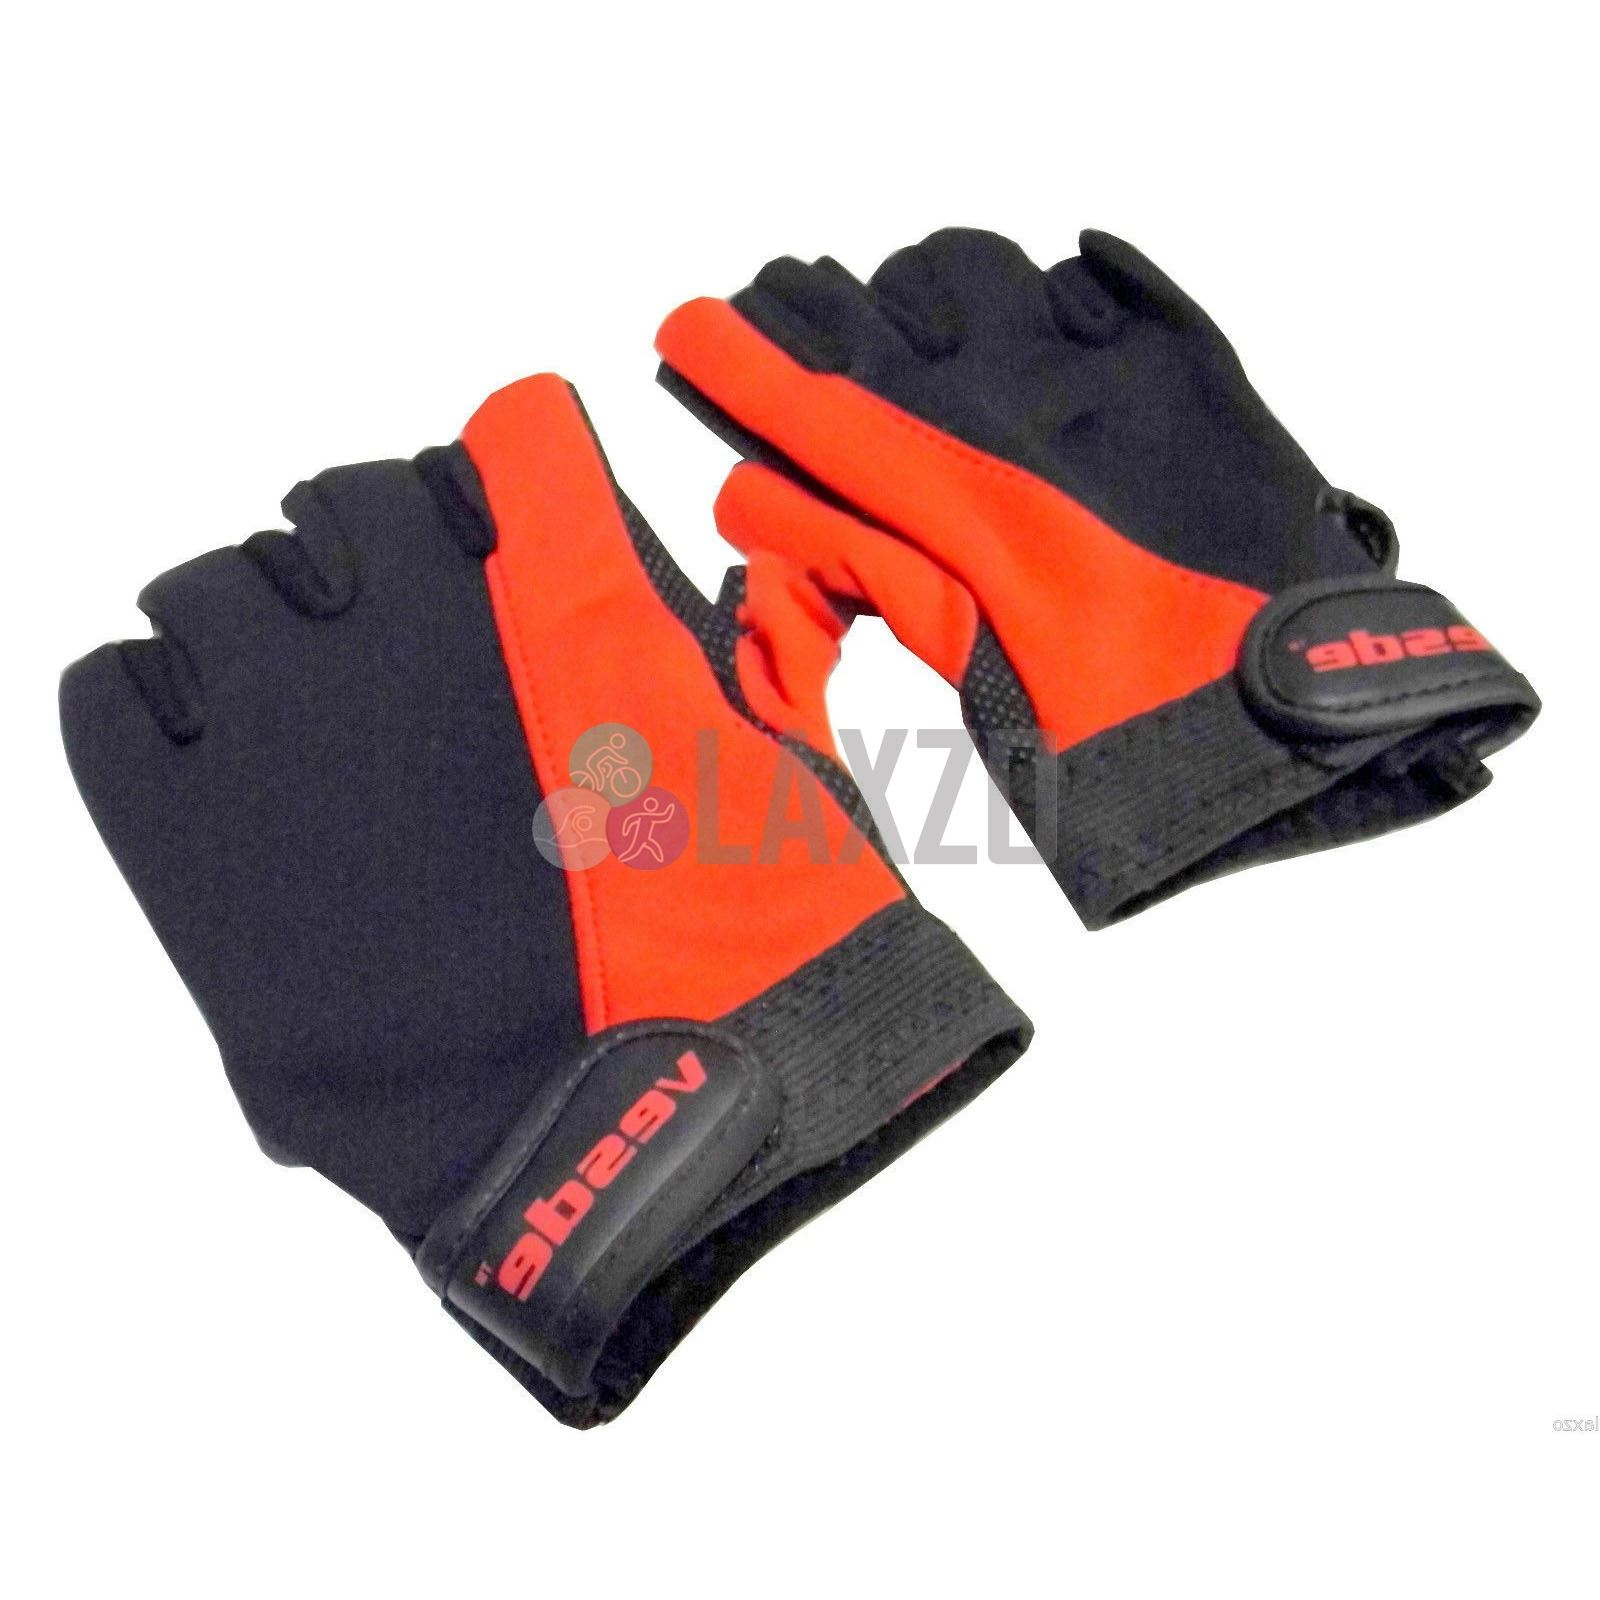 Bicycle Cycling Gym Gloves Mitts Half Finger Dotted Gel Grip One Size Grey Black